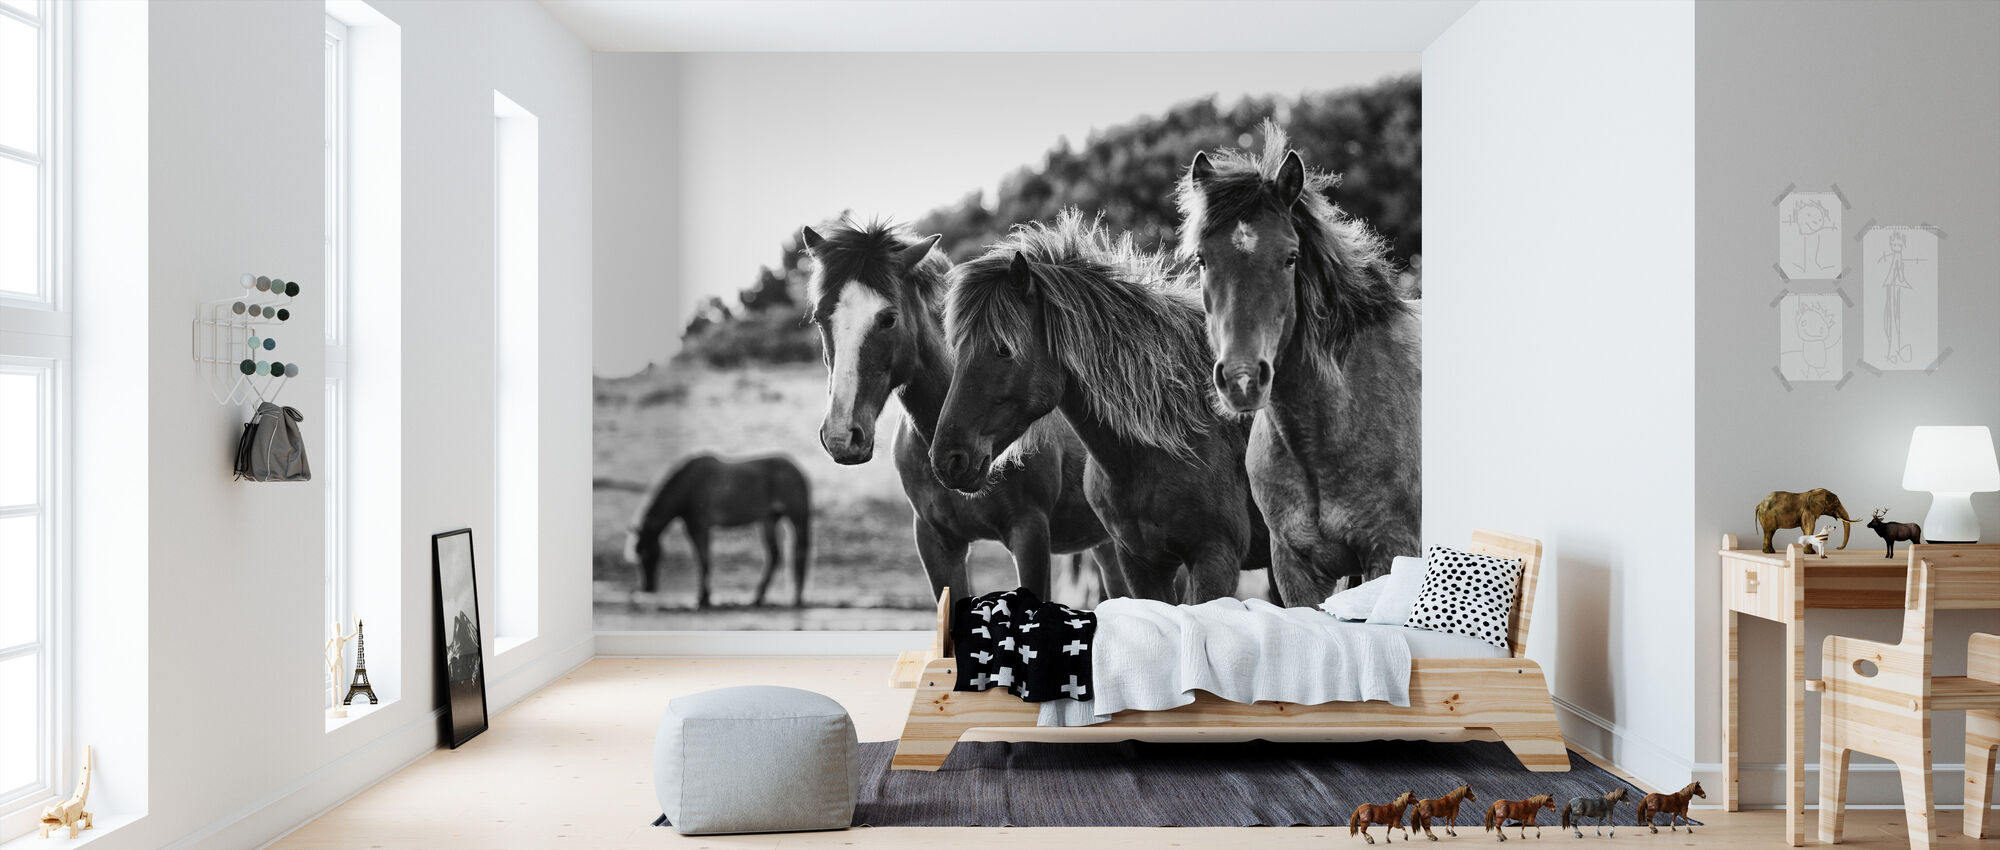 Horses Three - Wallpaper - Kids Room